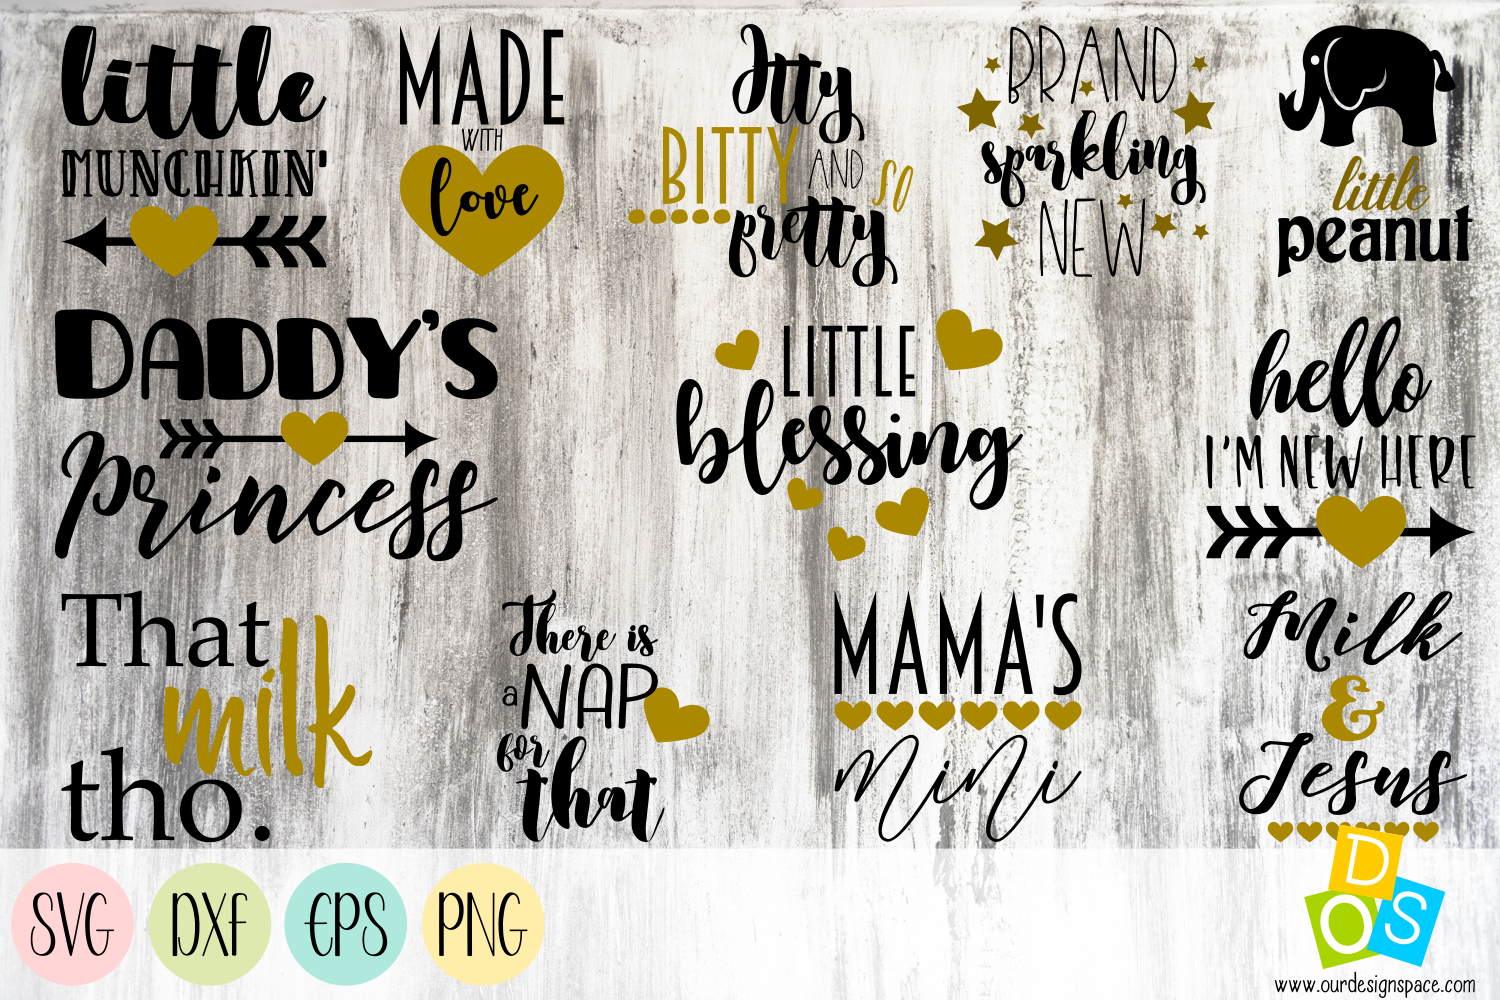 Download Free Baby Quotes Graphic By Our Design Space Creative Fabrica for Cricut Explore, Silhouette and other cutting machines.